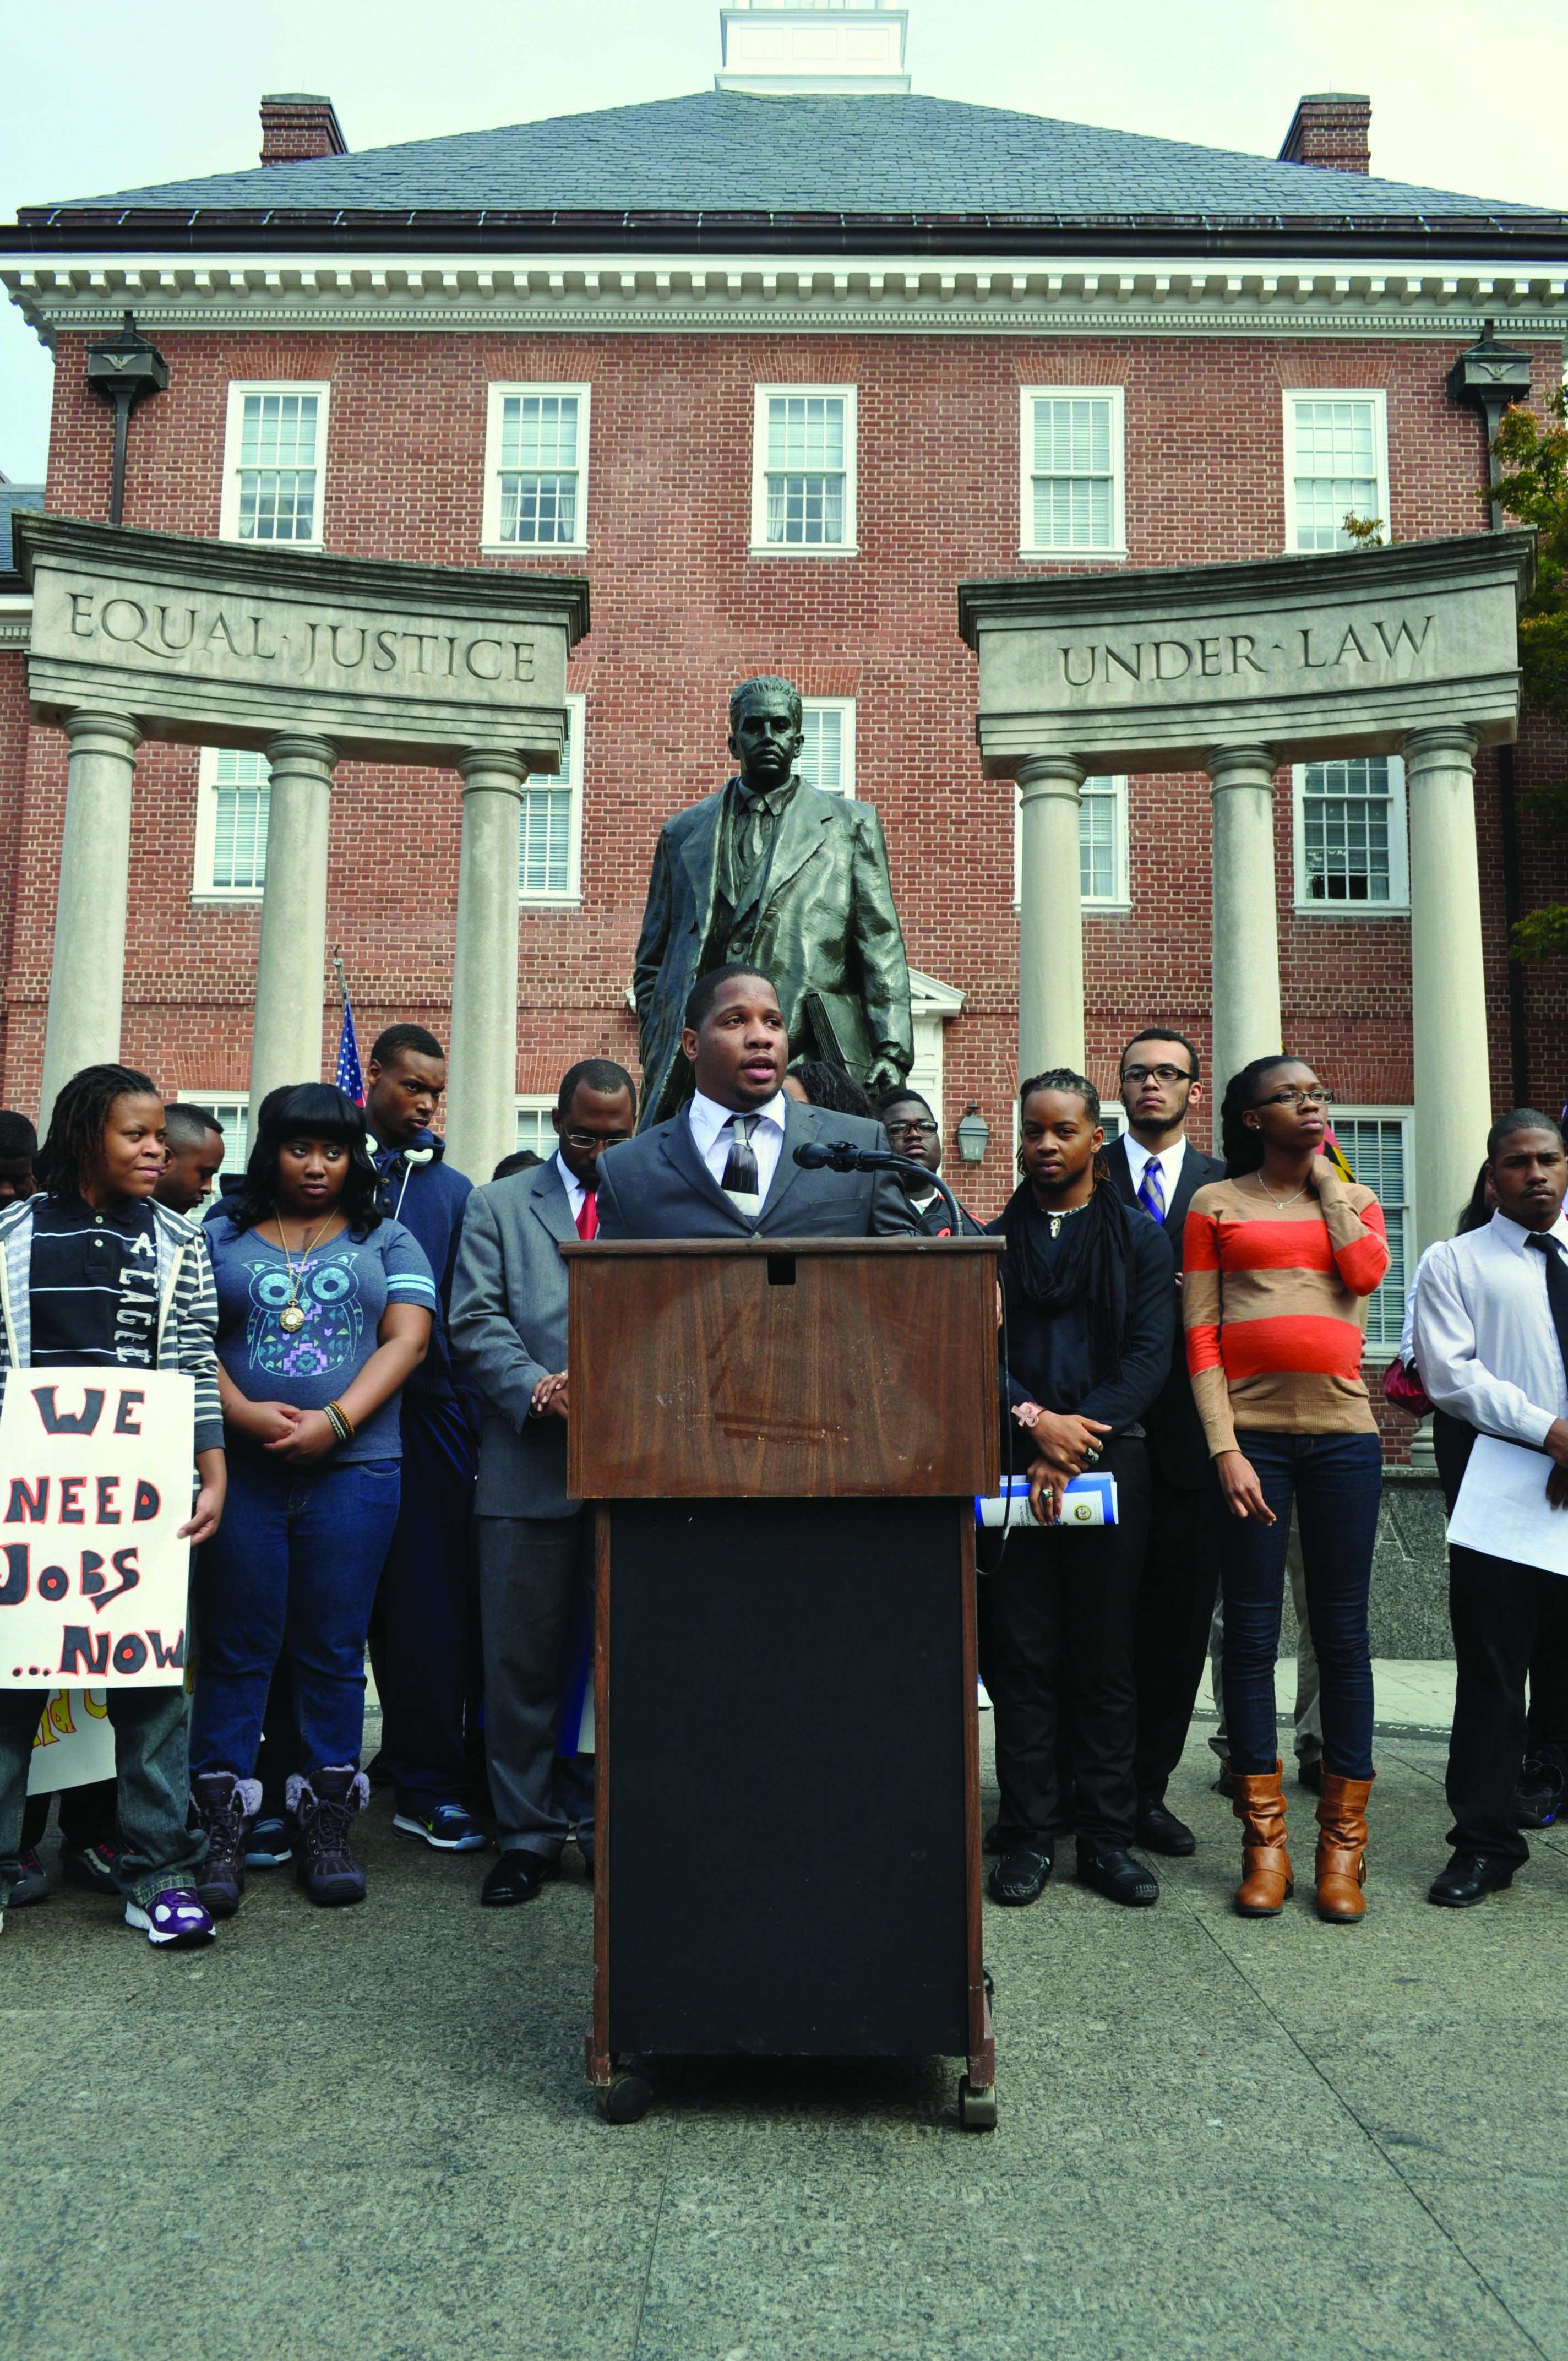 Dayvon Love speaks to a crowd protesting a new youth jail in Baltimore